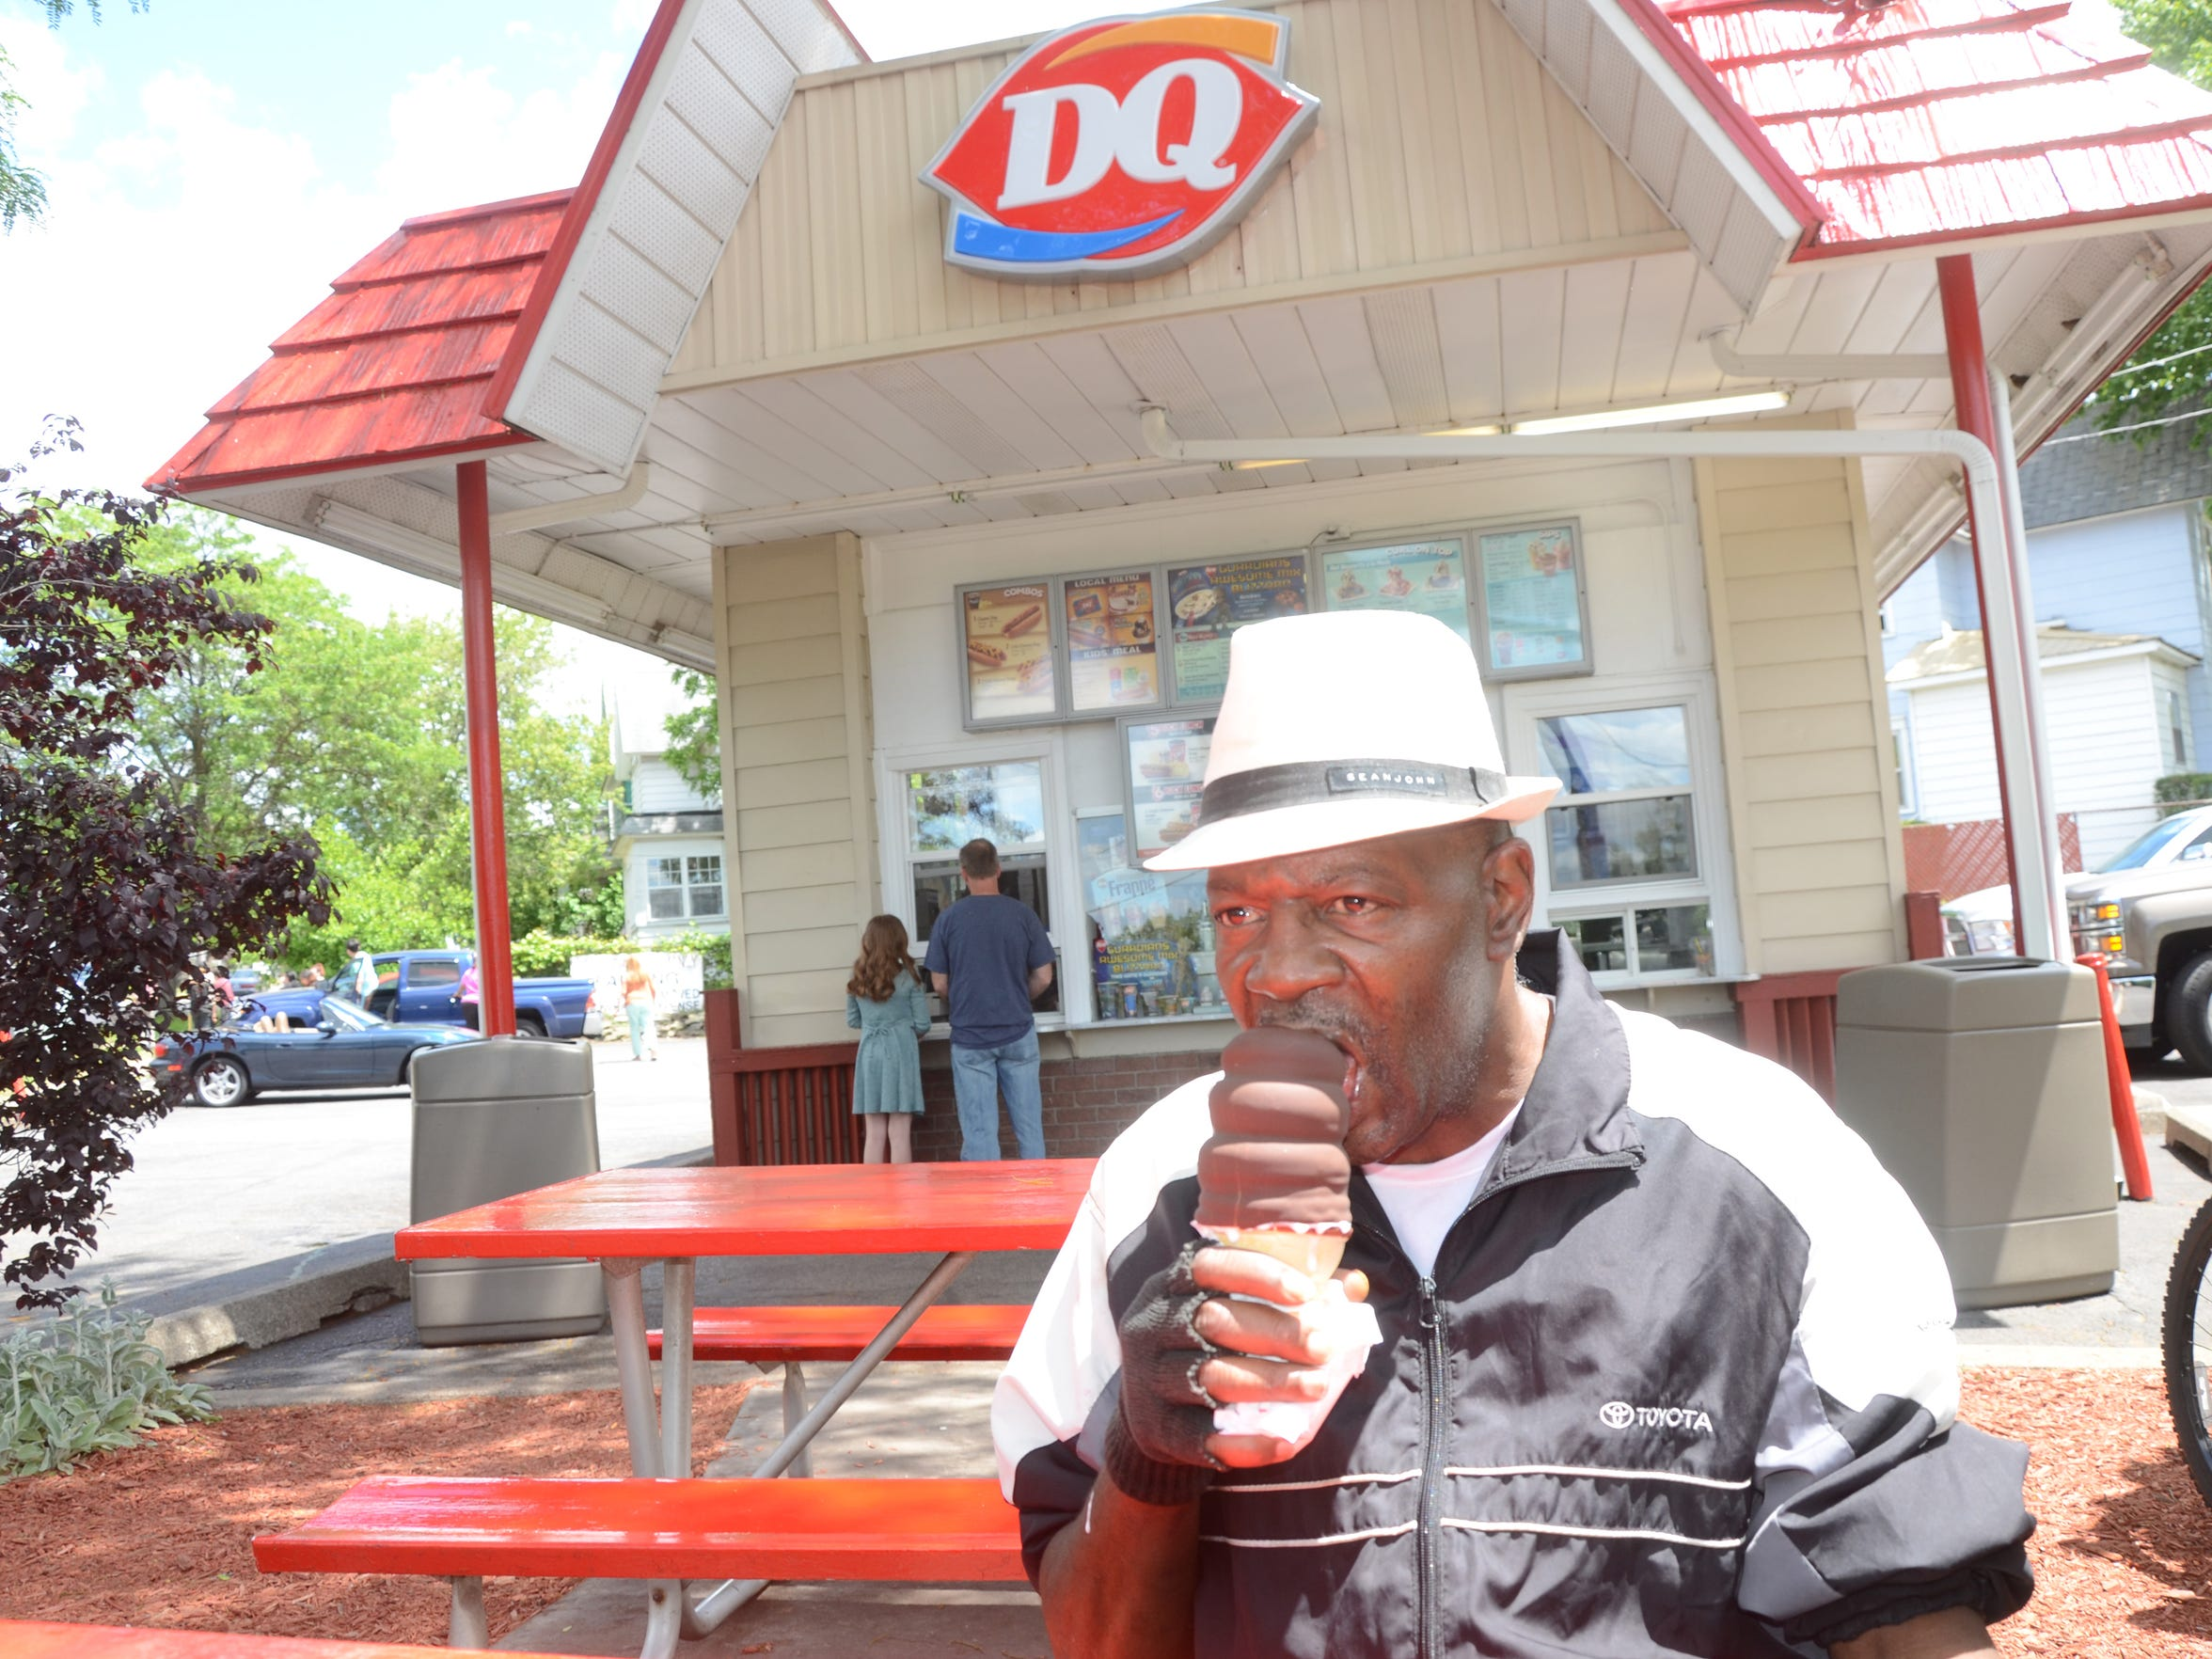 Sometimes the wait for ice cream at the Dairy Queen